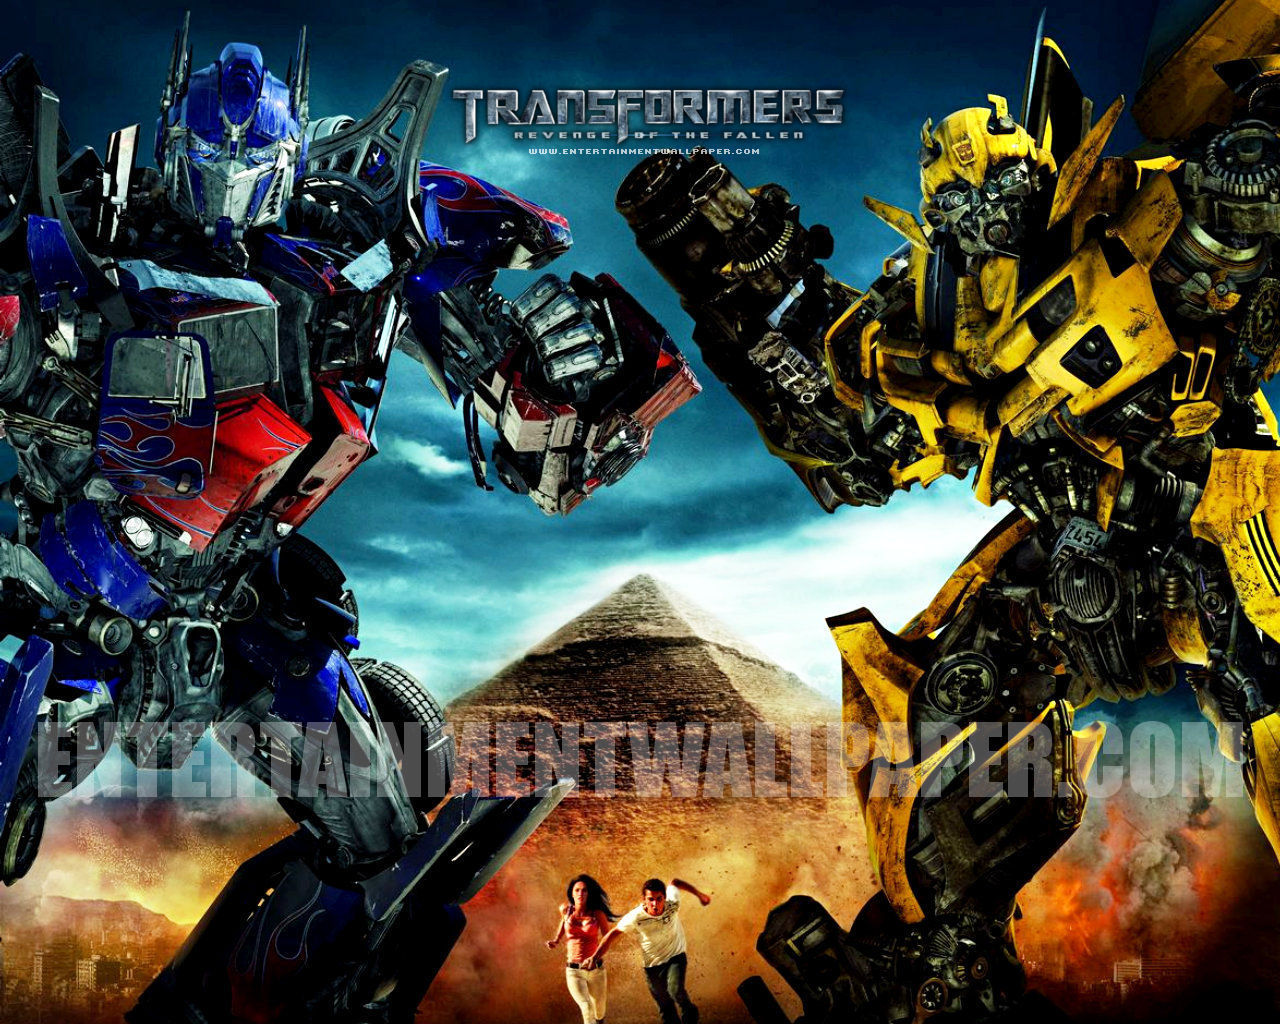 Wallpapers Dekstop 4 U: Transformers 2 Wallpaper